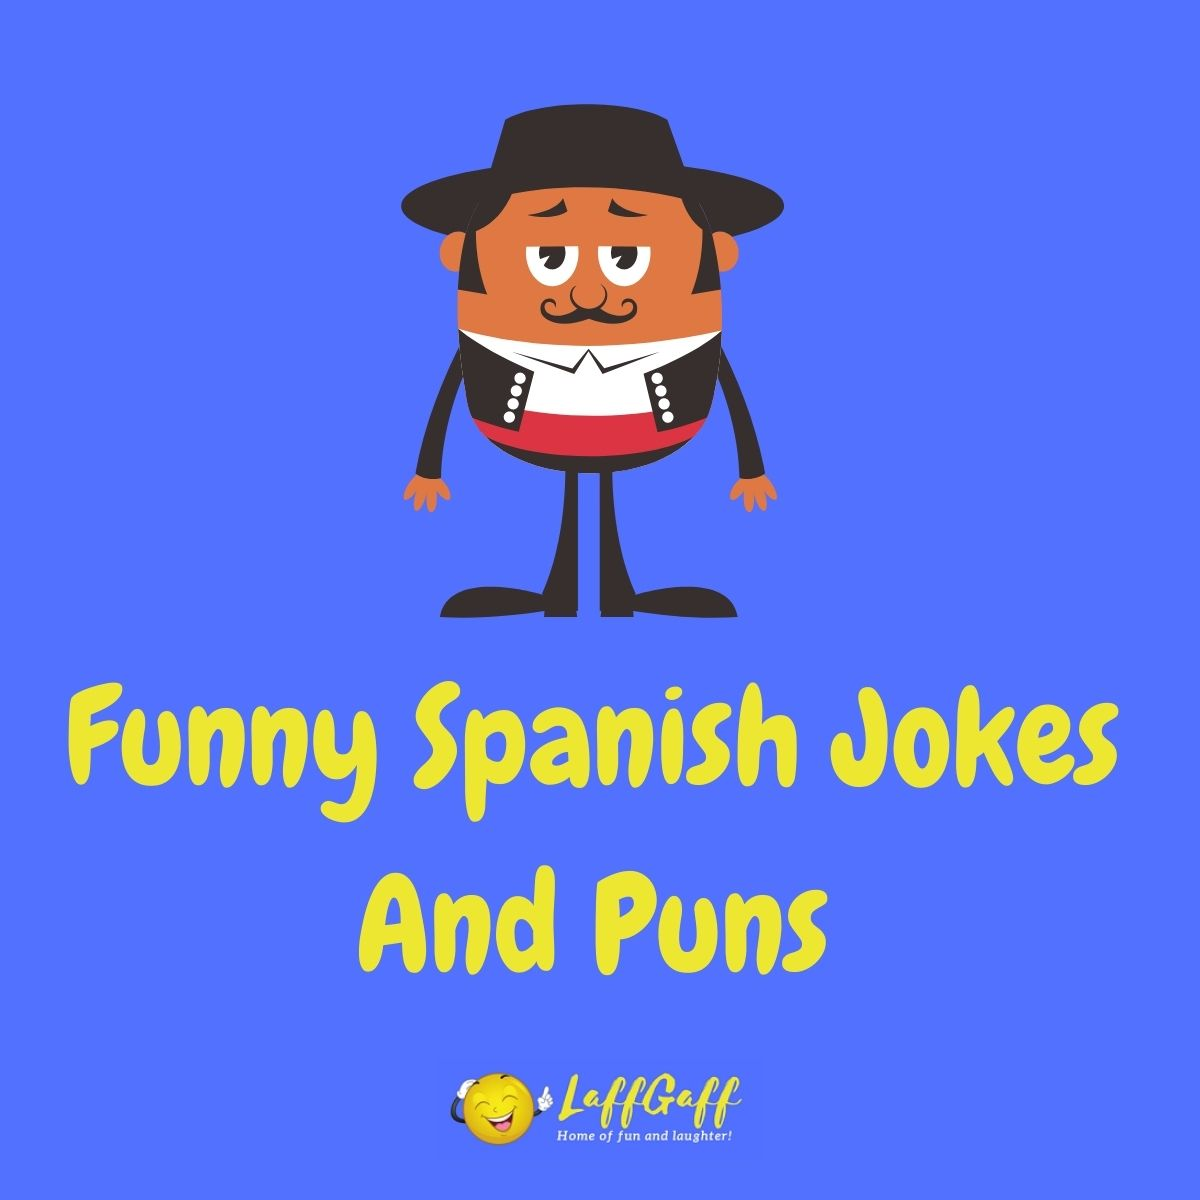 Featured image for a page of funny Spanish jokes and puns.